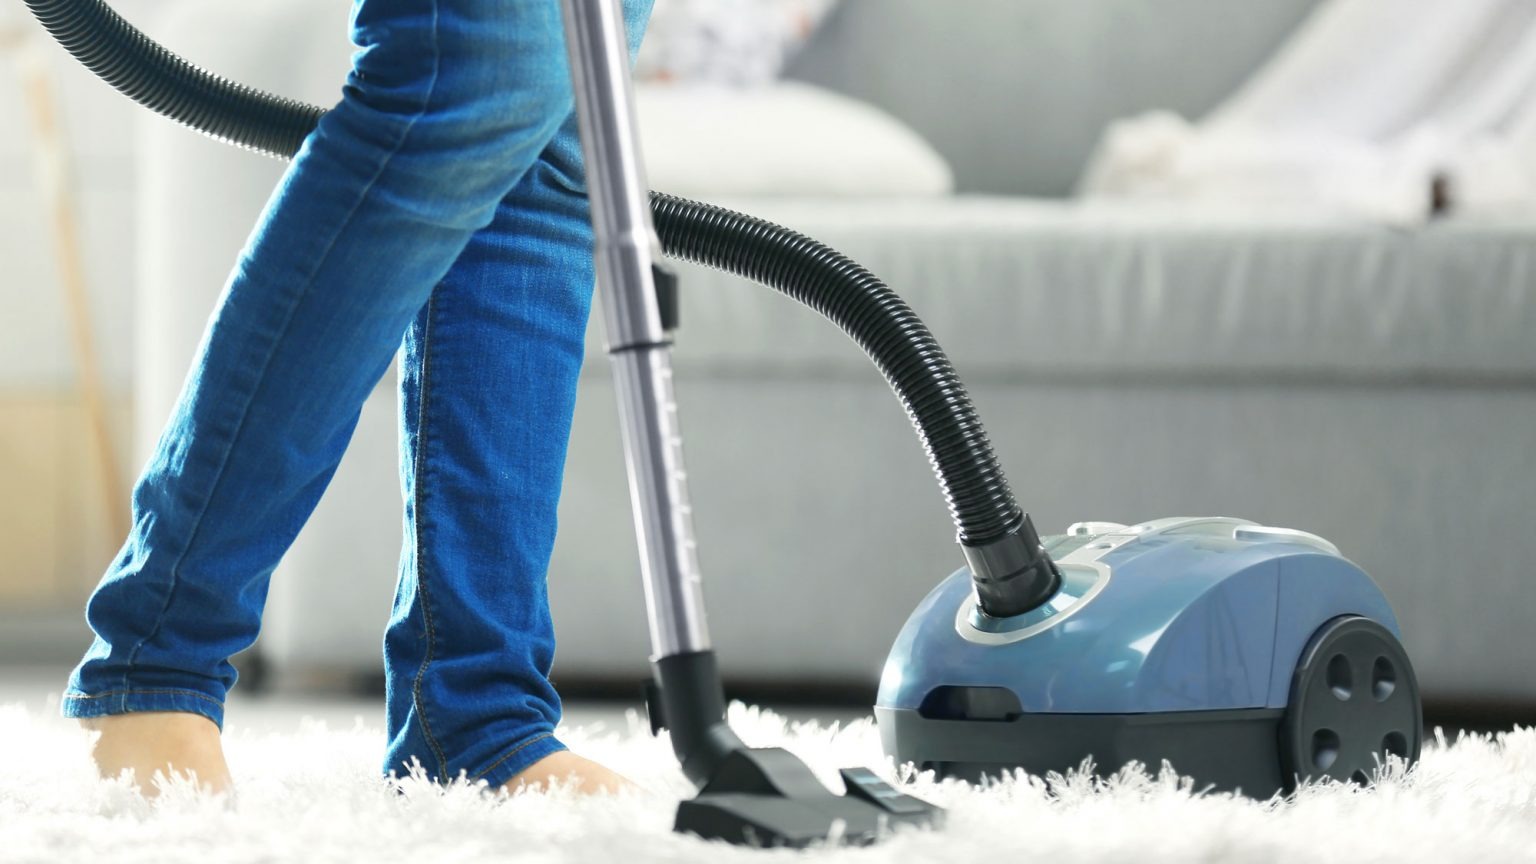 How to find the real professionals For Rug Cleaning